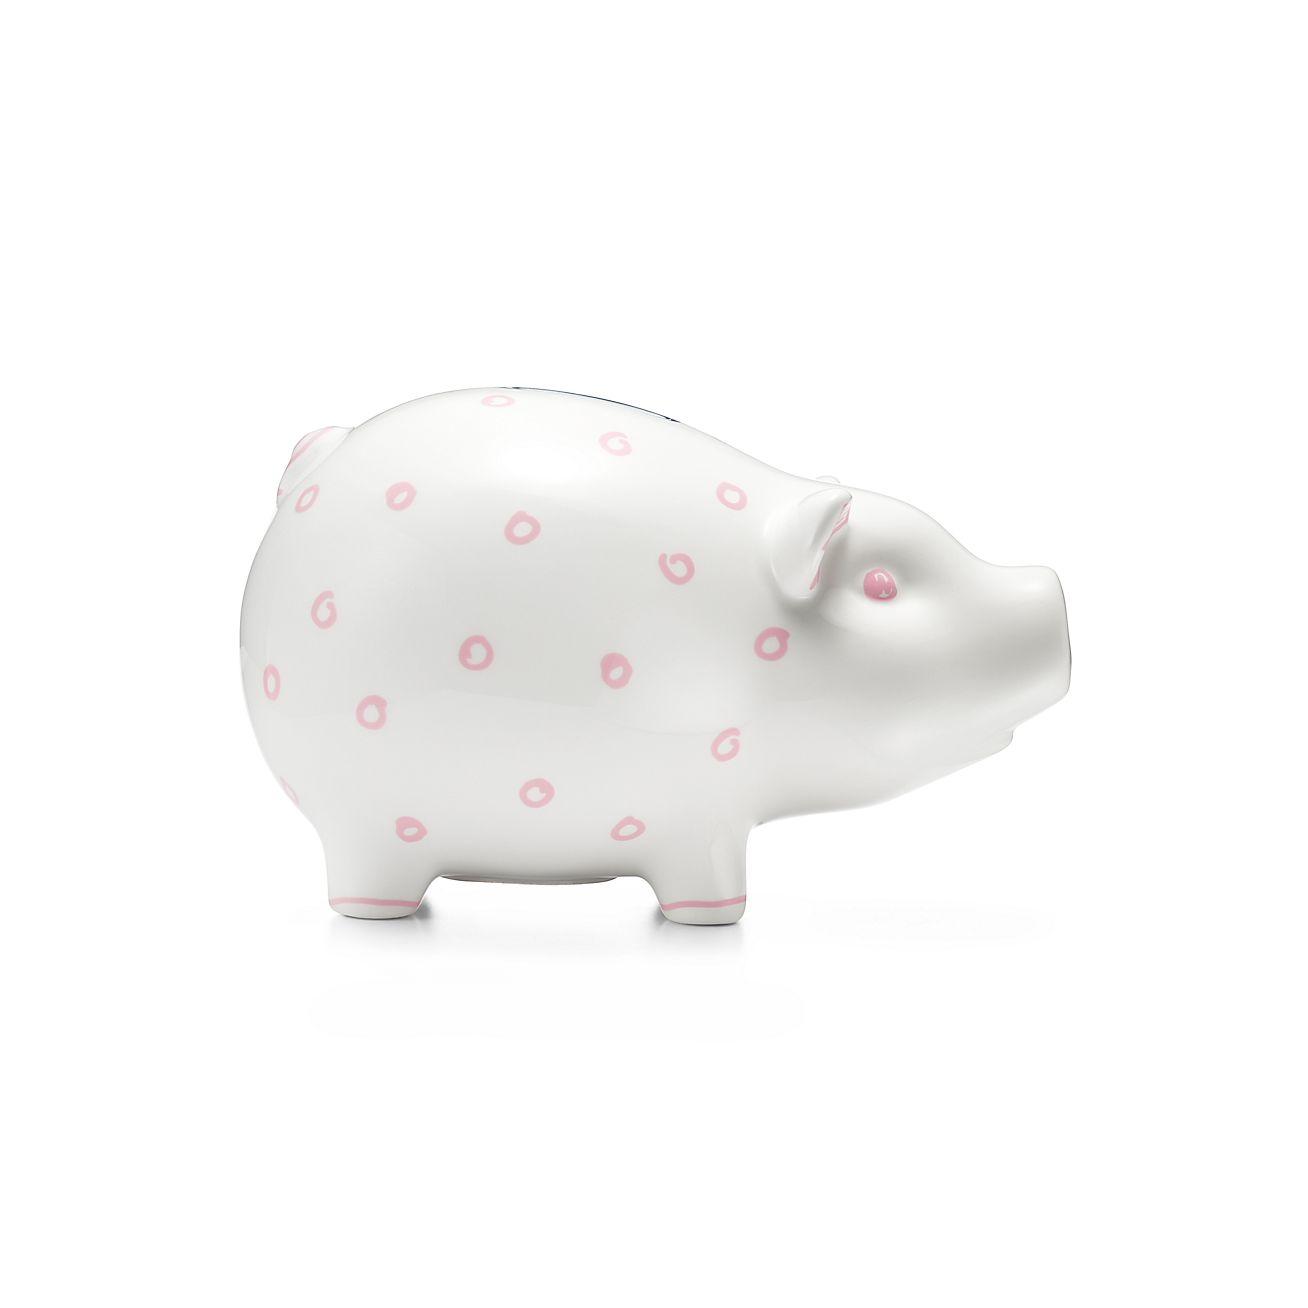 Coin Box Made in Italy Children STERLING SILVER Money Bank Saving Box PINK